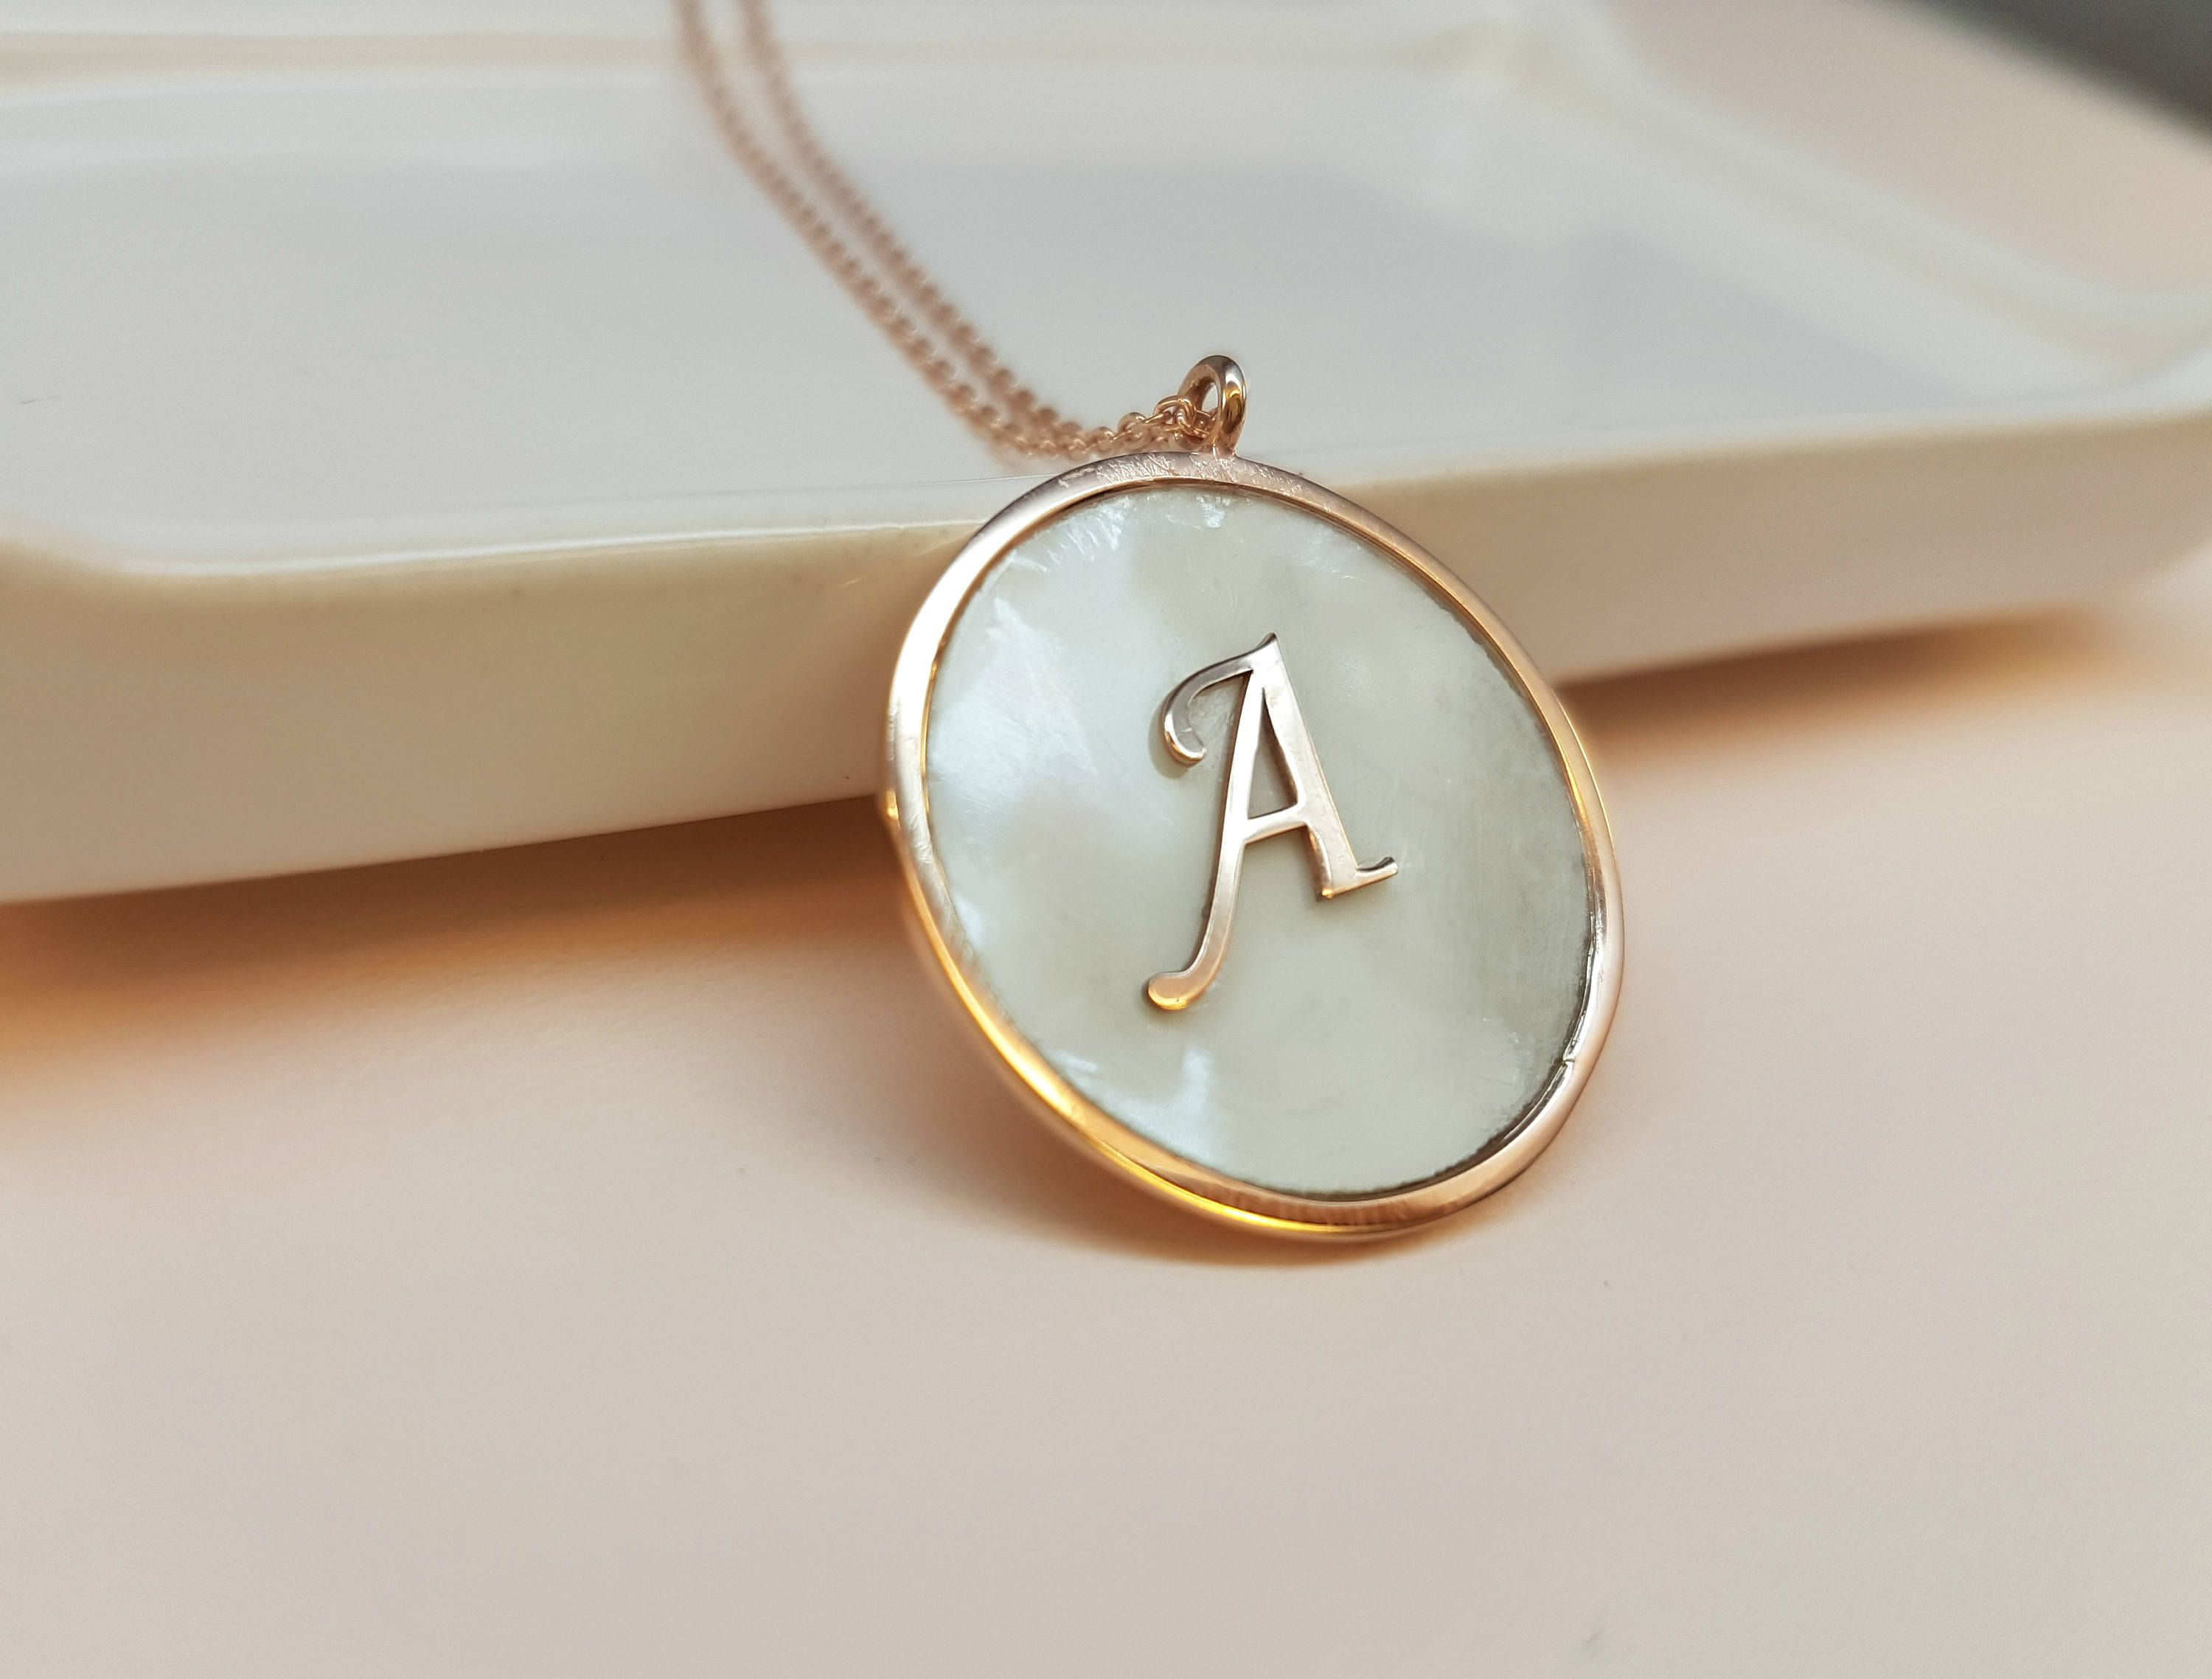 personalized pendant original custom product jewelry disc charm initial gift bridesmaid letter necklace gold